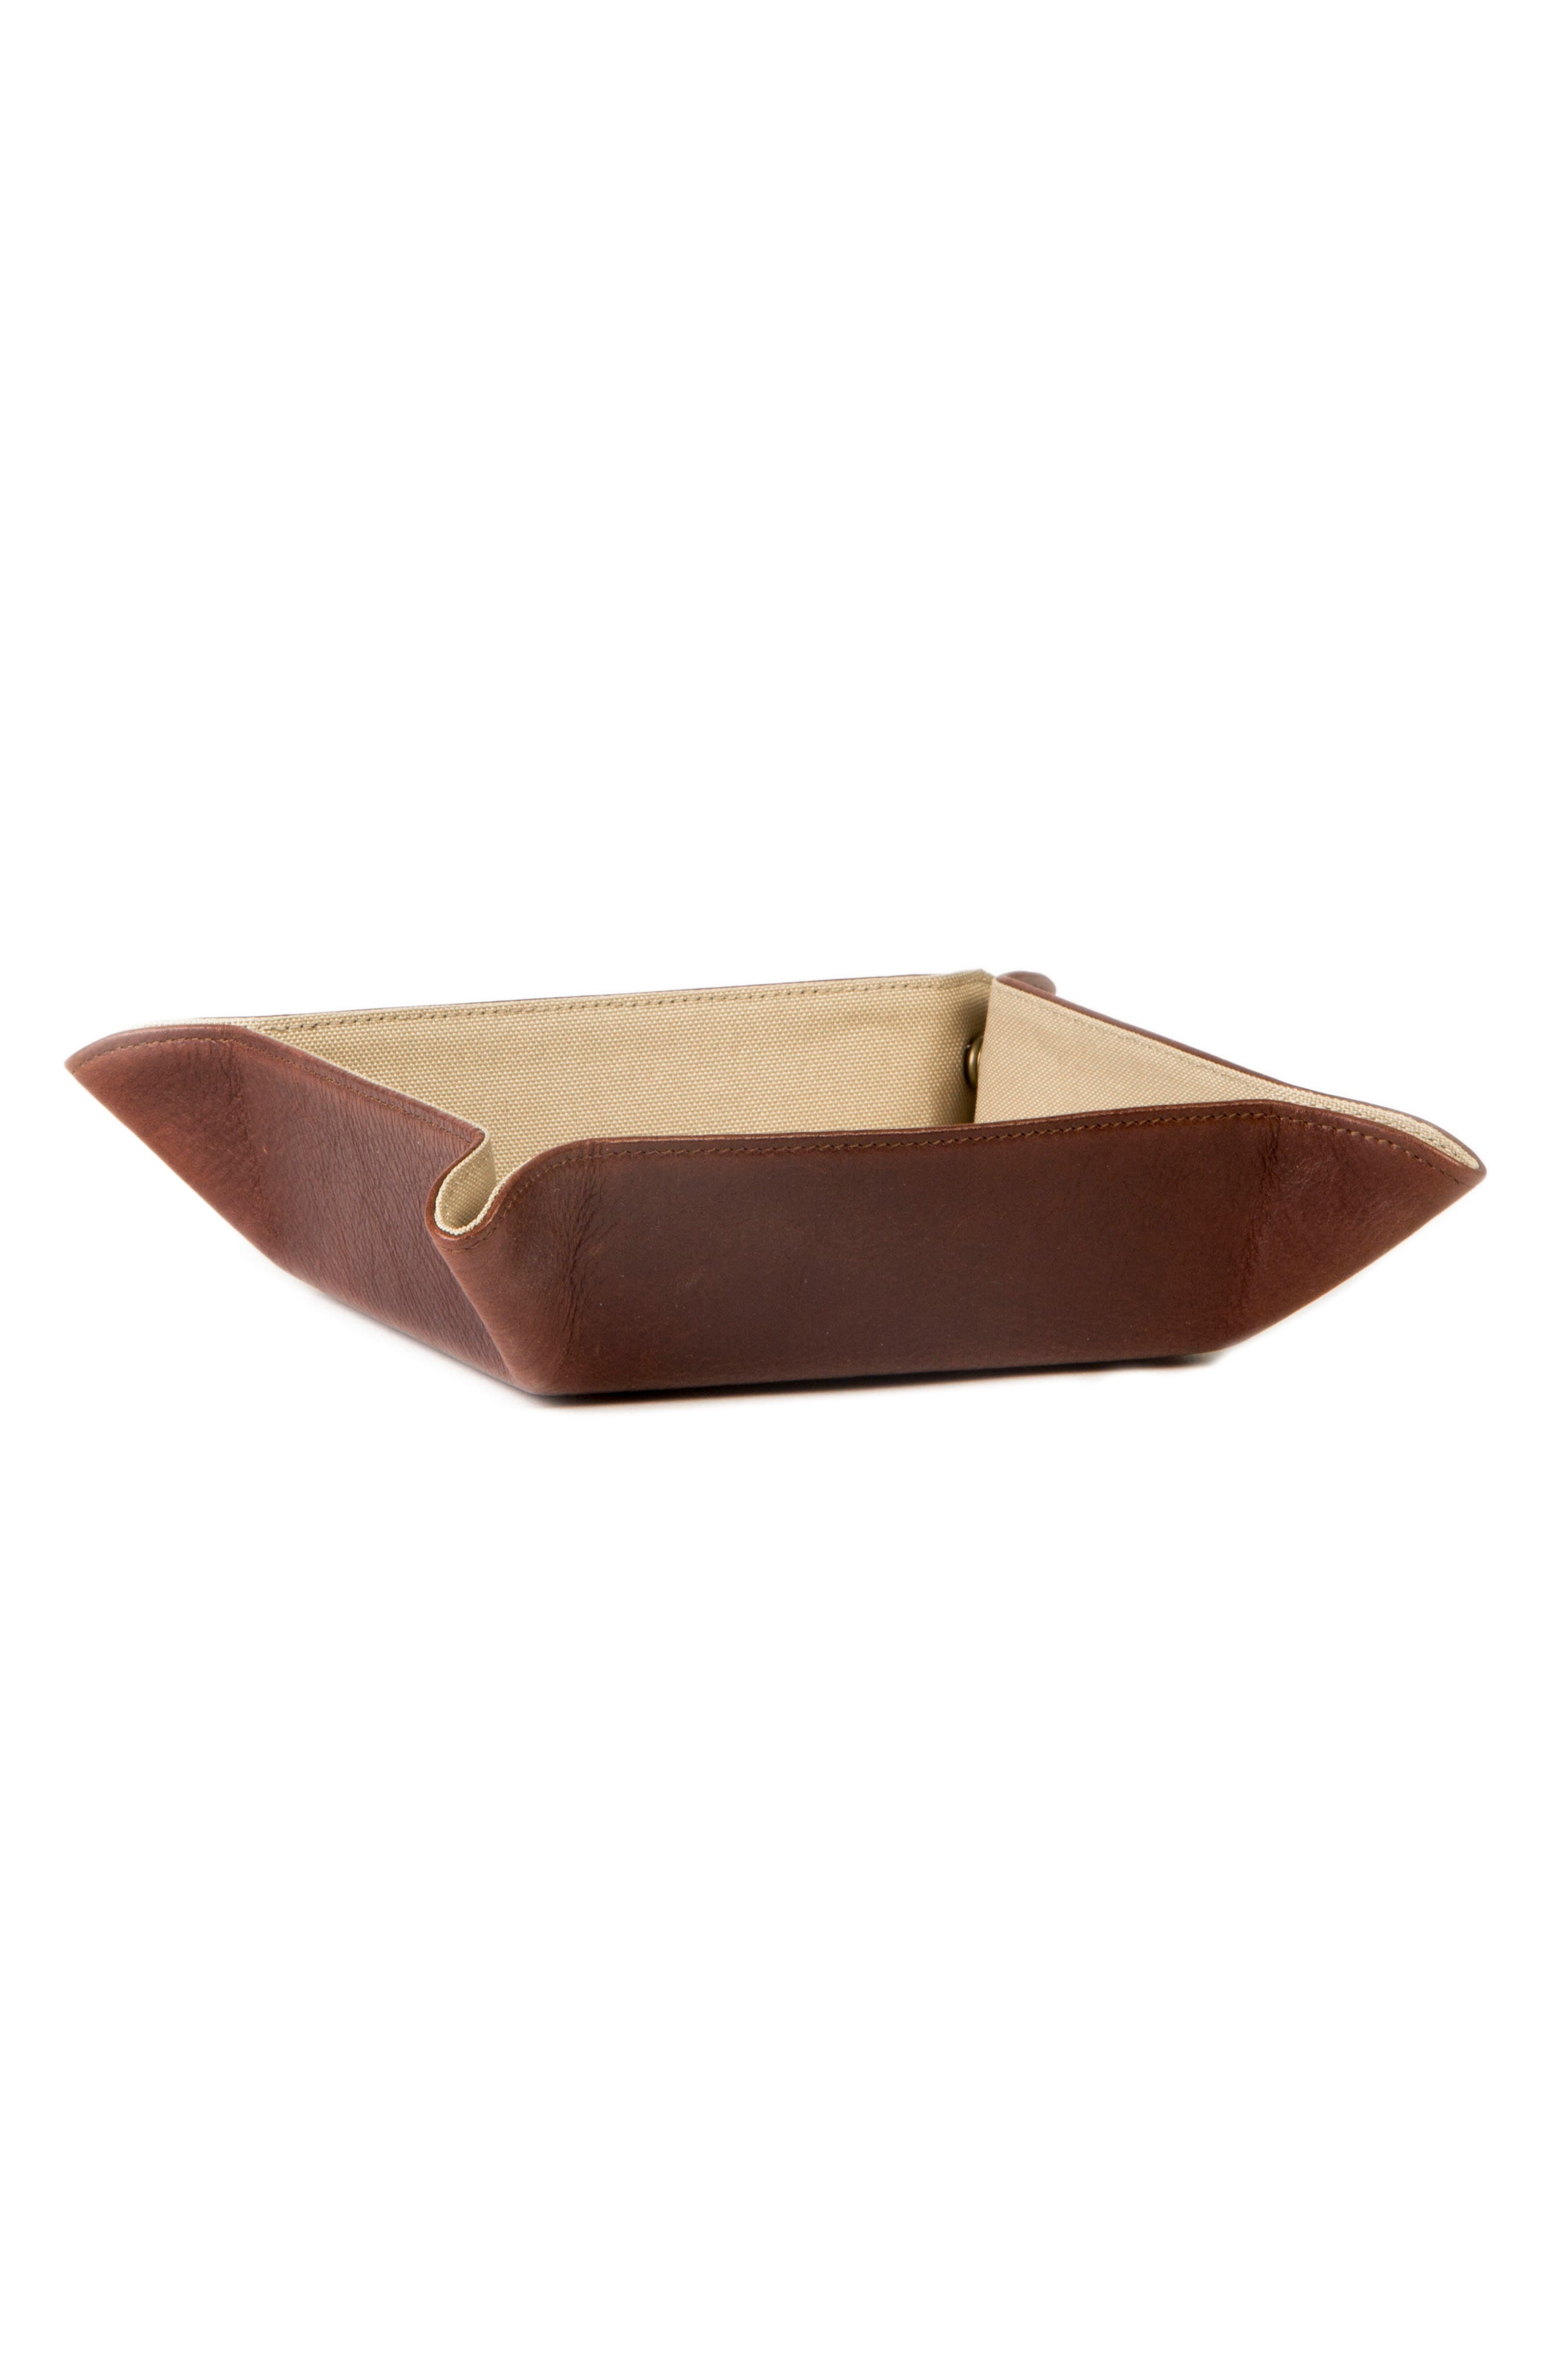 Becker Catchall Tray,                             Alternate thumbnail 3, color,                             Whiskey